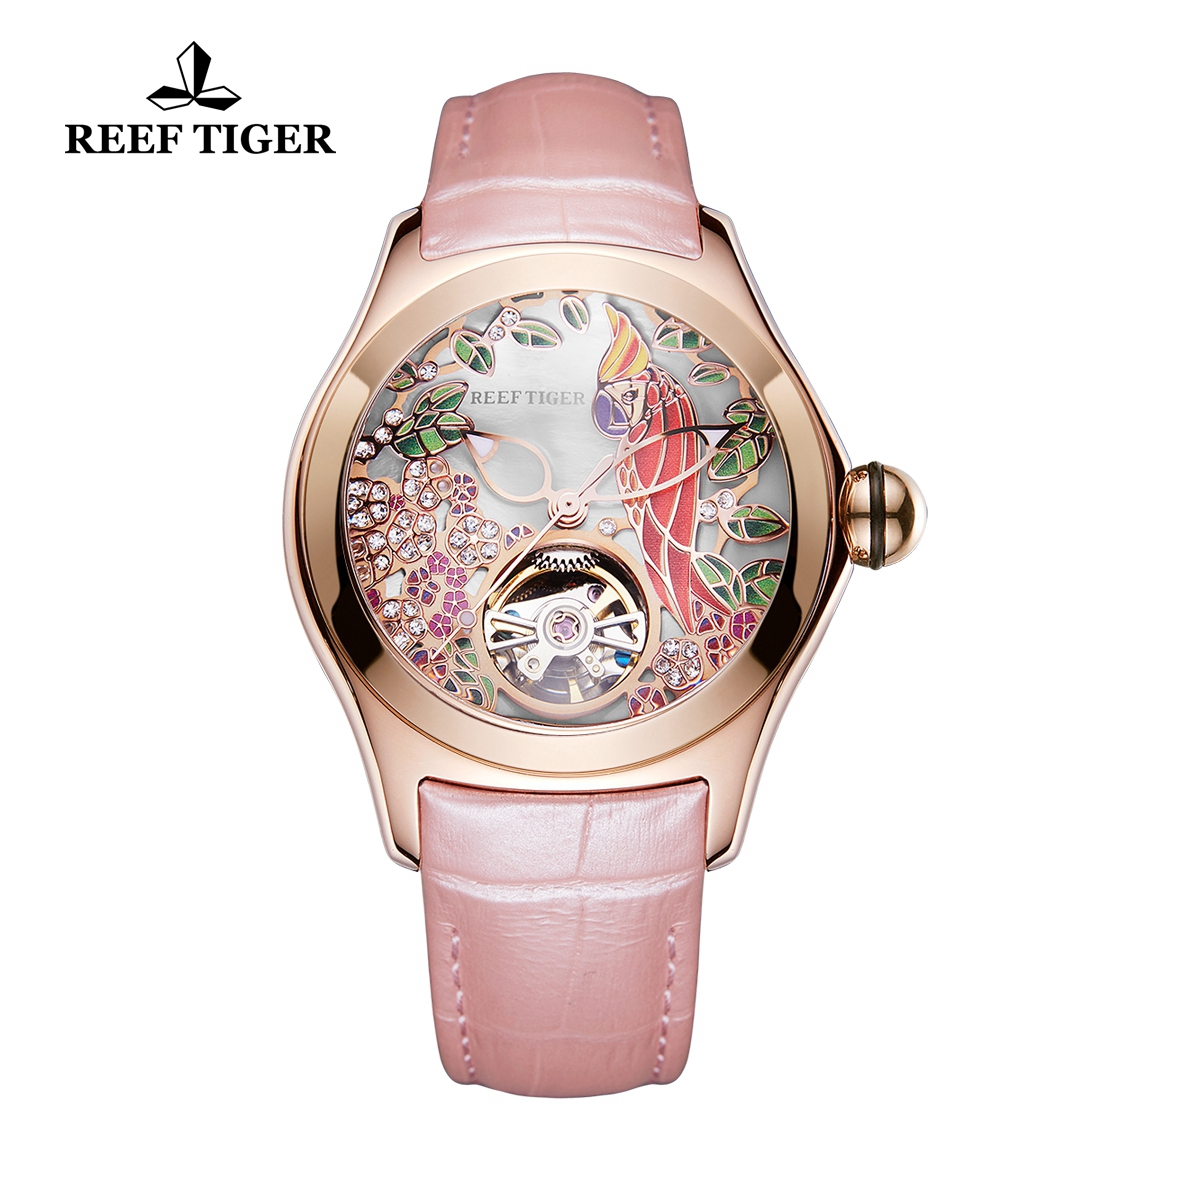 Reef Tiger Aurora Parrot Casual Watches Rose Gold Case Automatic Watch Leather Strap RGA7105-PSP